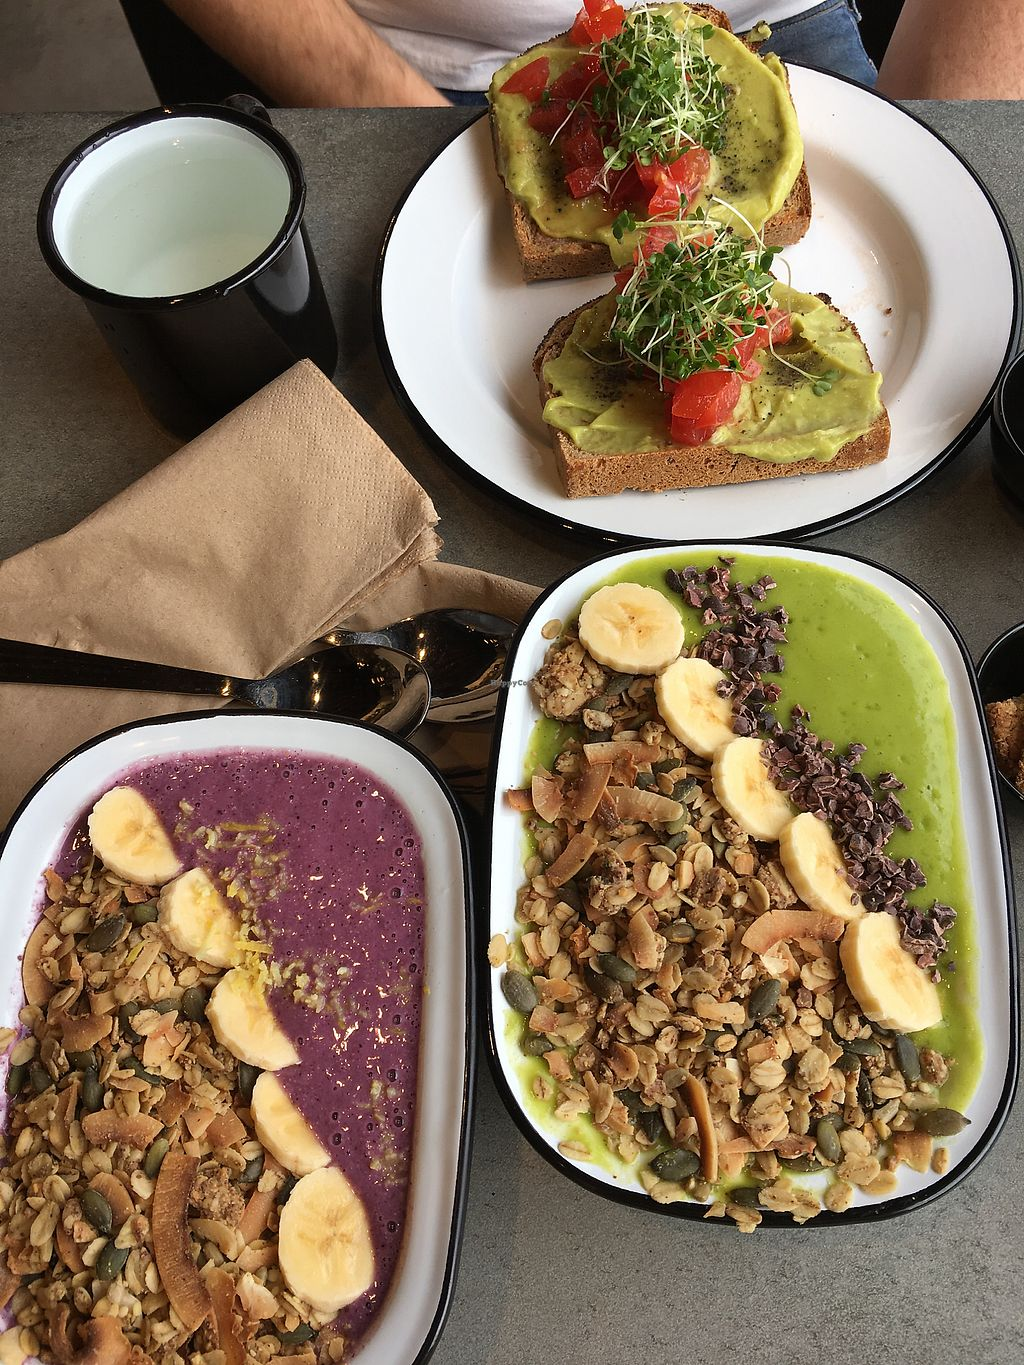 """Photo of Eight - The Health Lounge  by <a href=""""/members/profile/C%2Fclaire"""">C/claire</a> <br/>Breakfast  <br/> April 2, 2018  - <a href='/contact/abuse/image/111218/379867'>Report</a>"""